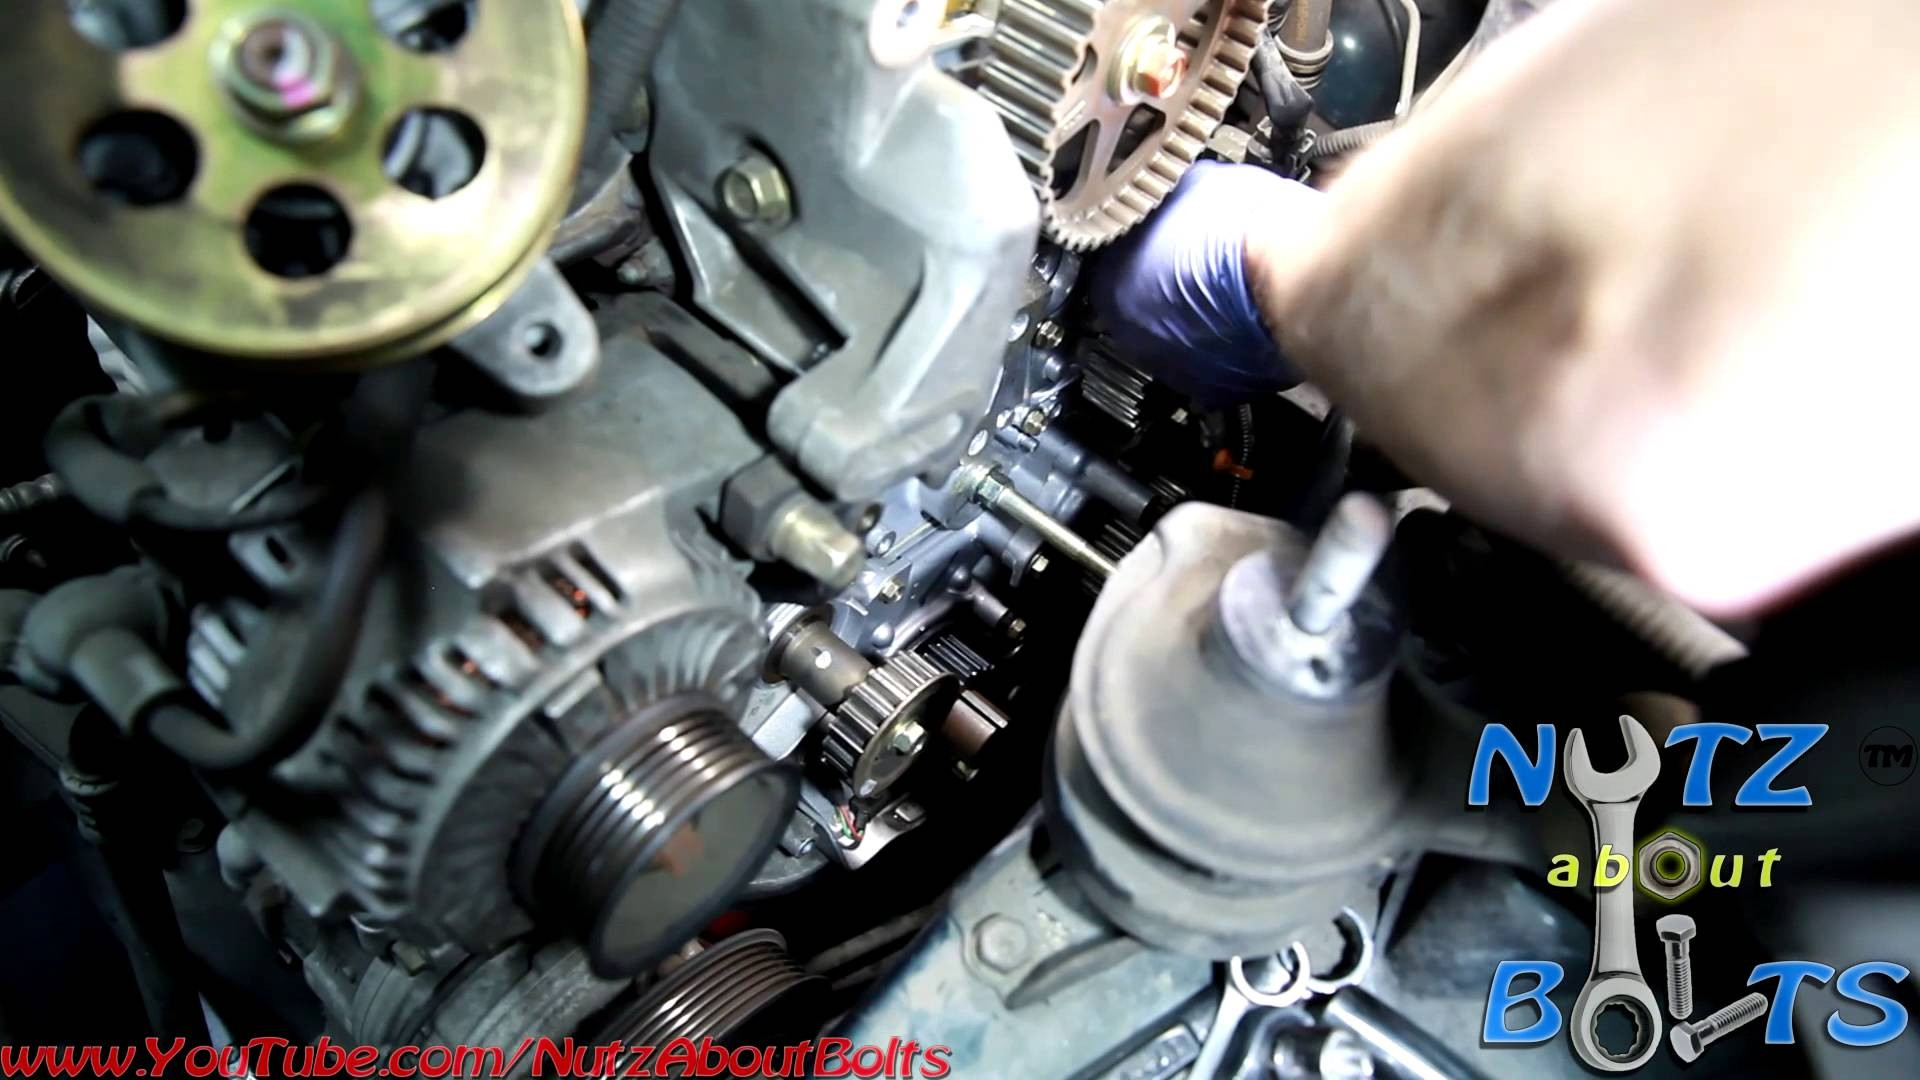 1993 Honda Accord Engine Diagram 1995 Cr Fuse Box 1998 2002 Timing Belt Replacement With Water Pump Of